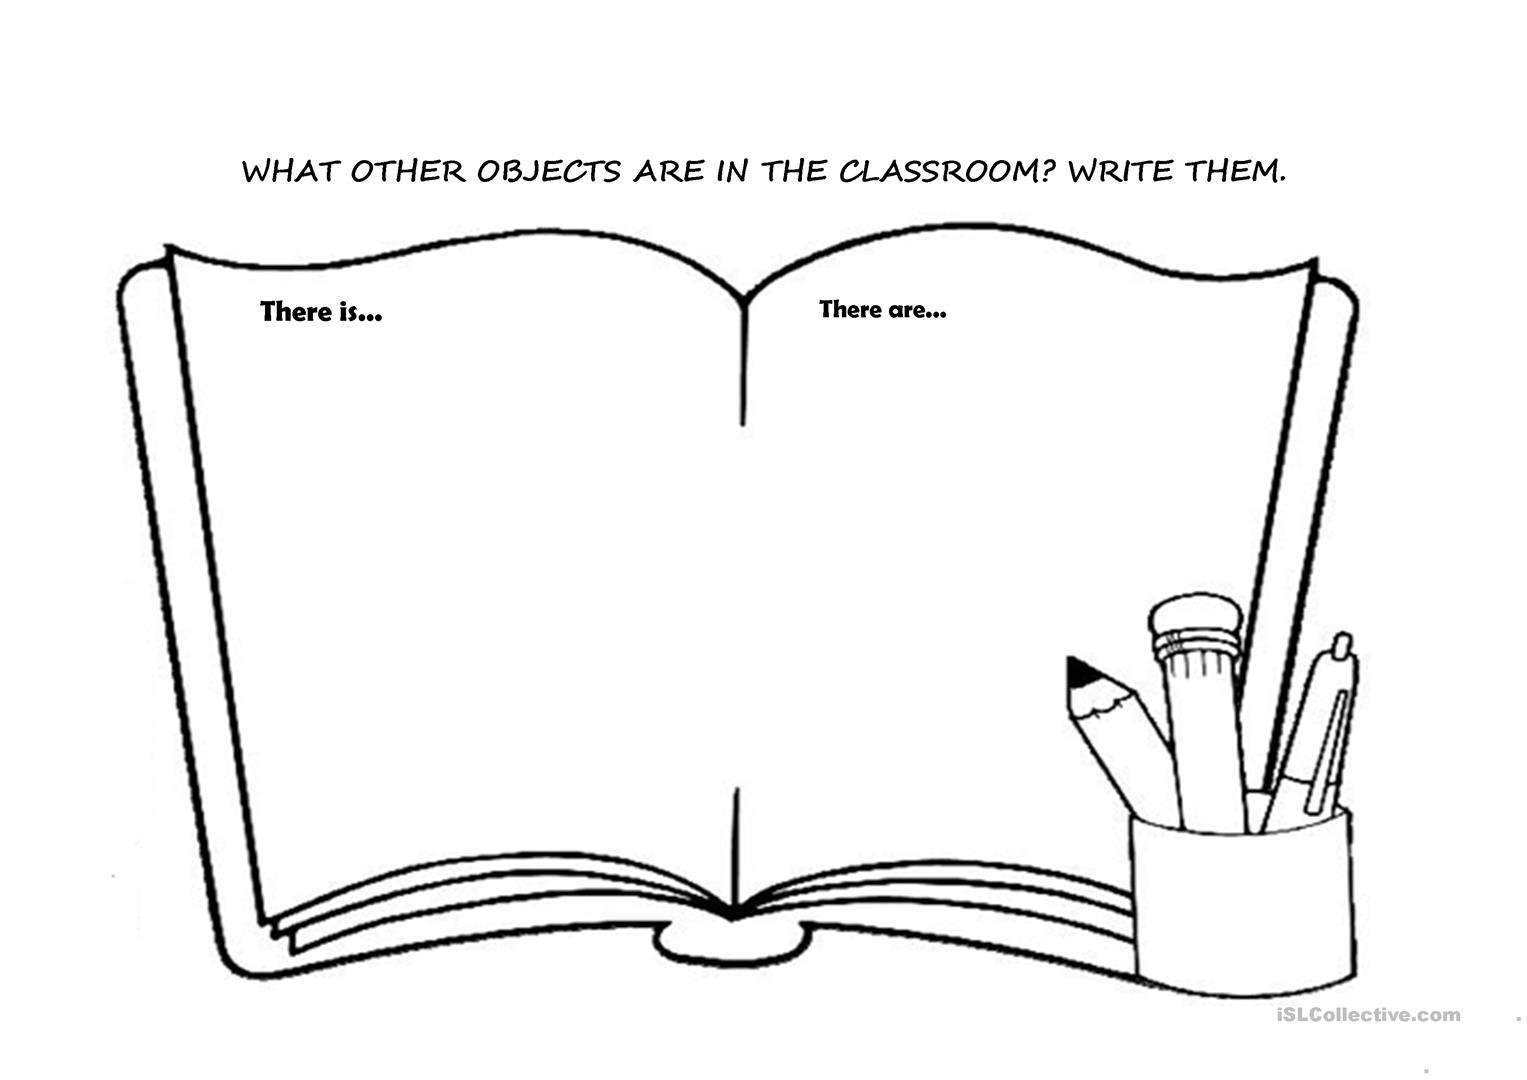 Classroom Objects There Is There Are